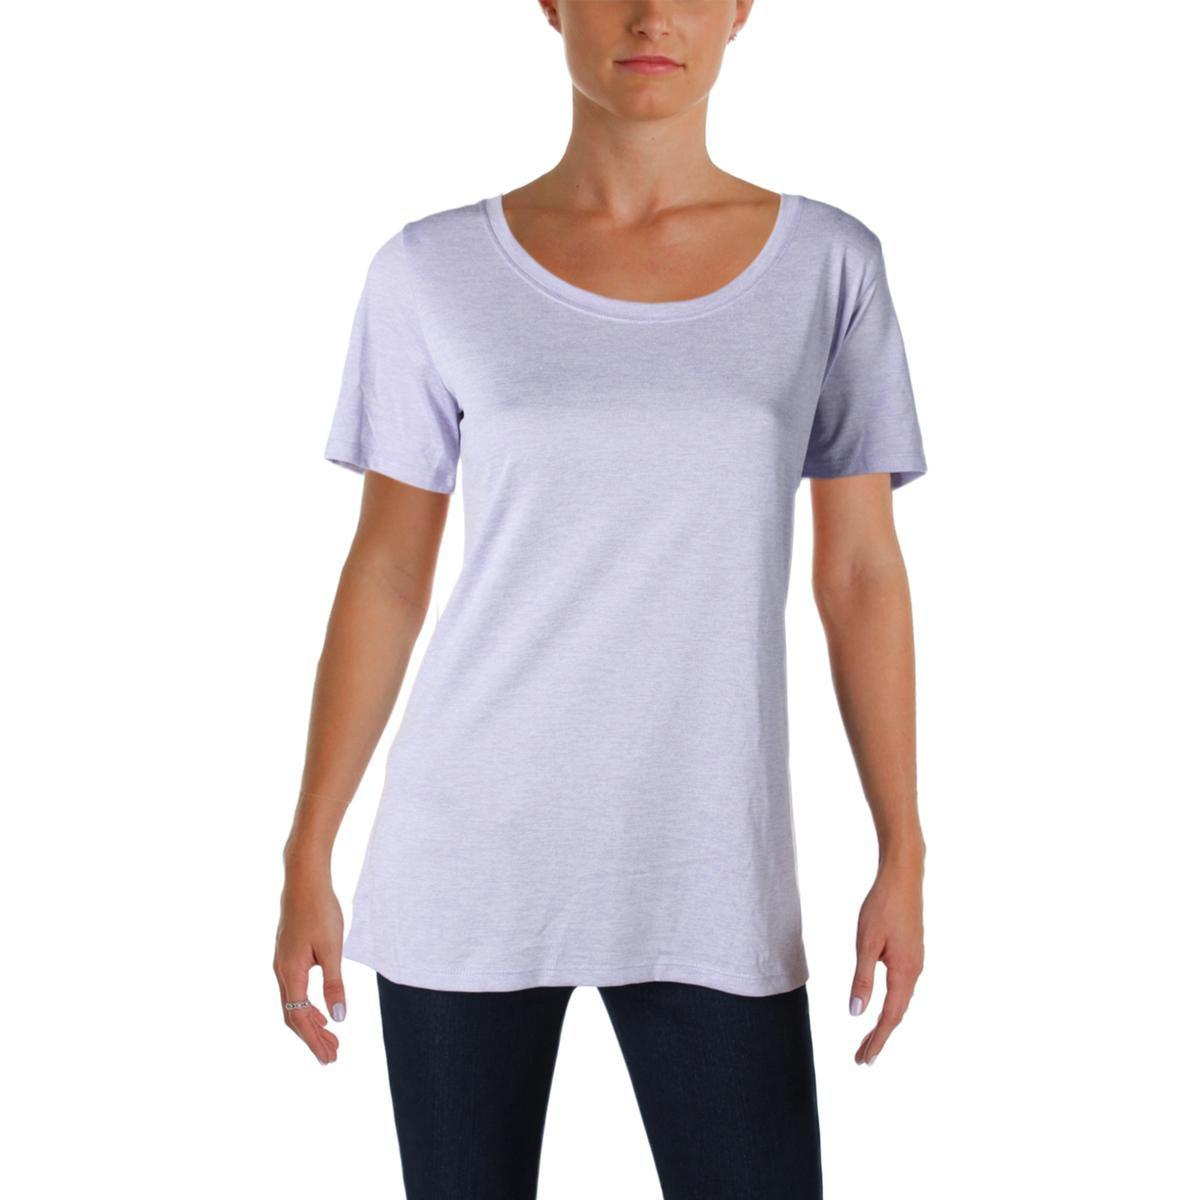 2d38e4d8 Lyst - Nike Womens Dri-fit Short Sleeves T-shirt in Purple